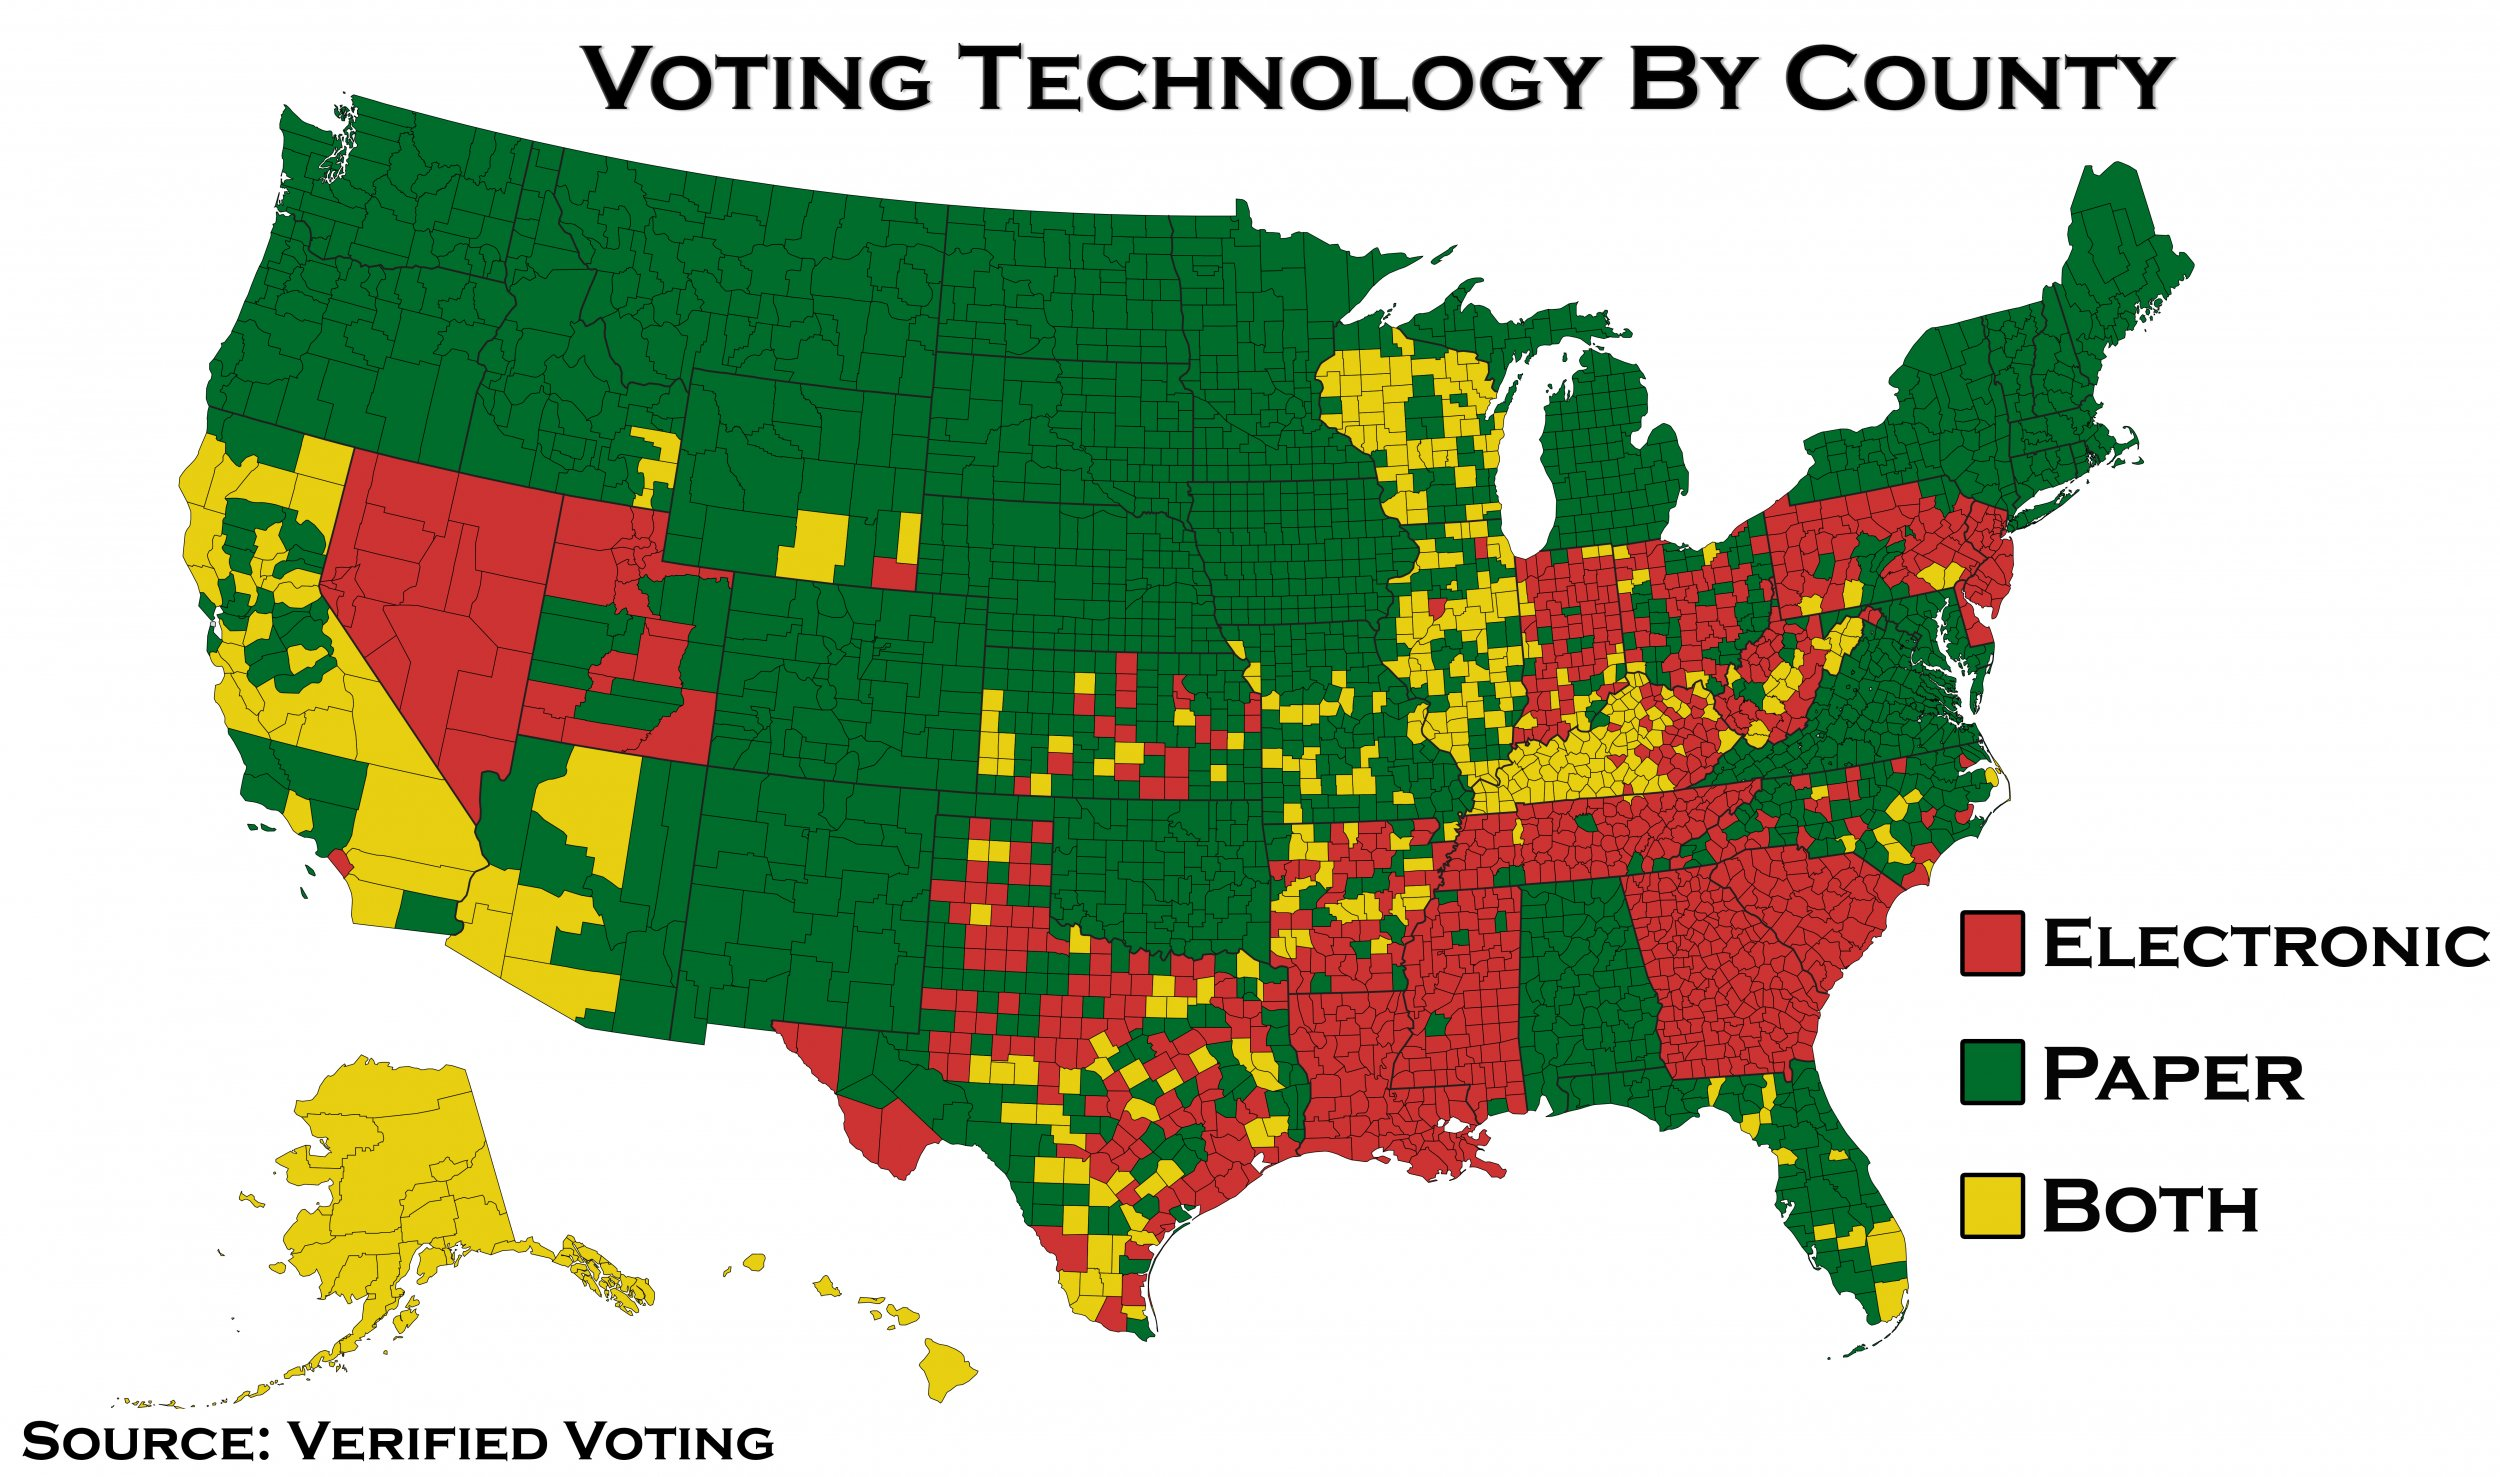 Voting Technology by County